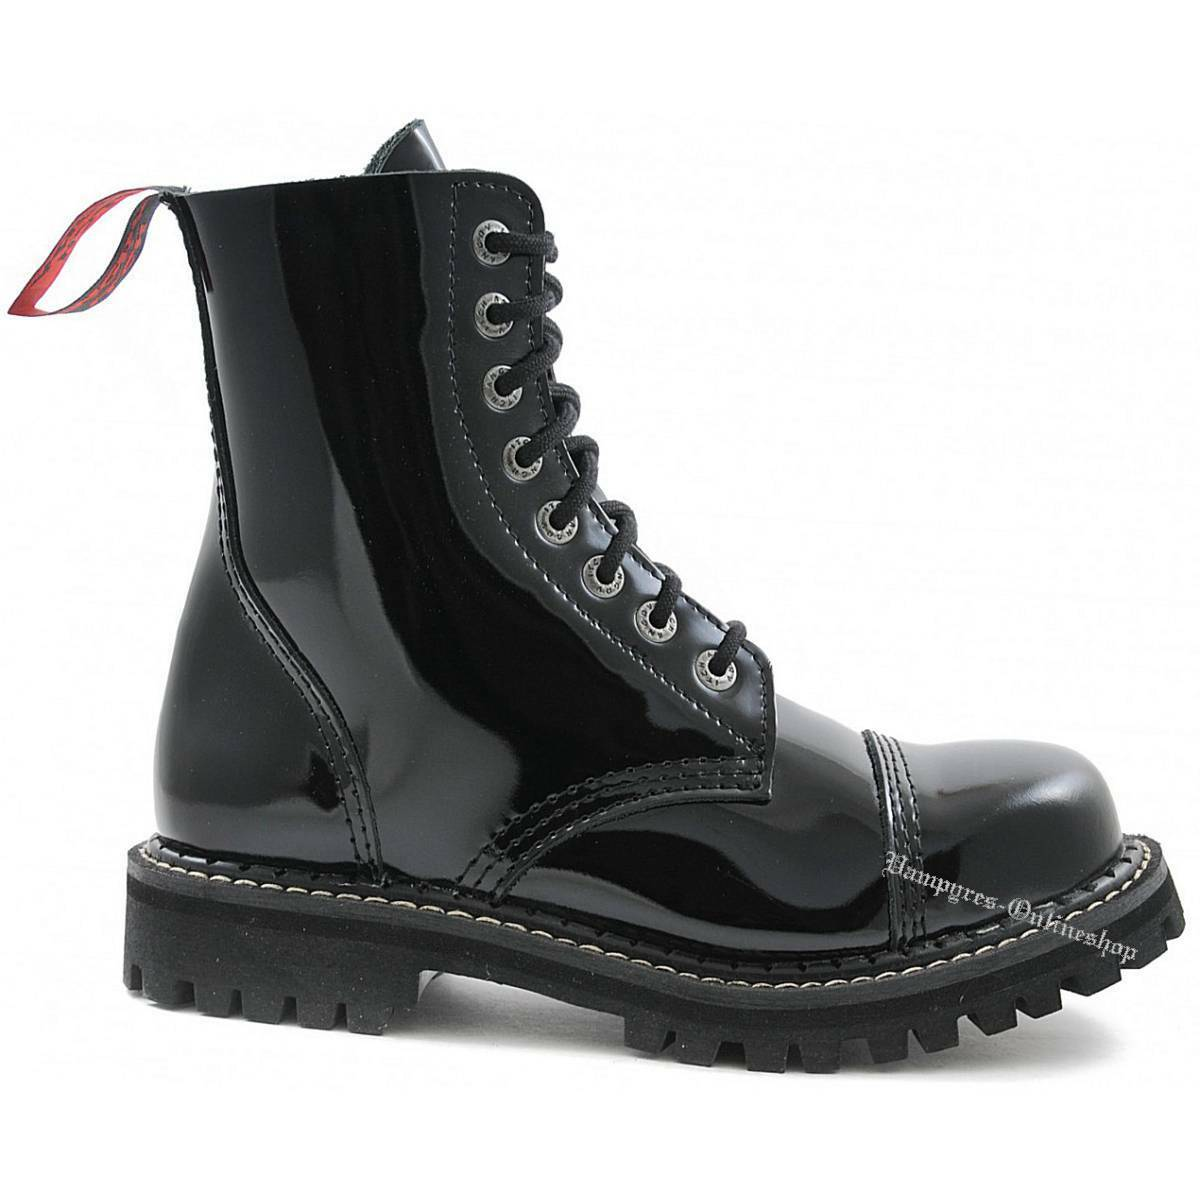 Angry Itch 8-Loch Lack Schwarz Rangers Leder Stiefel Stahlkappen Schuhe Boots